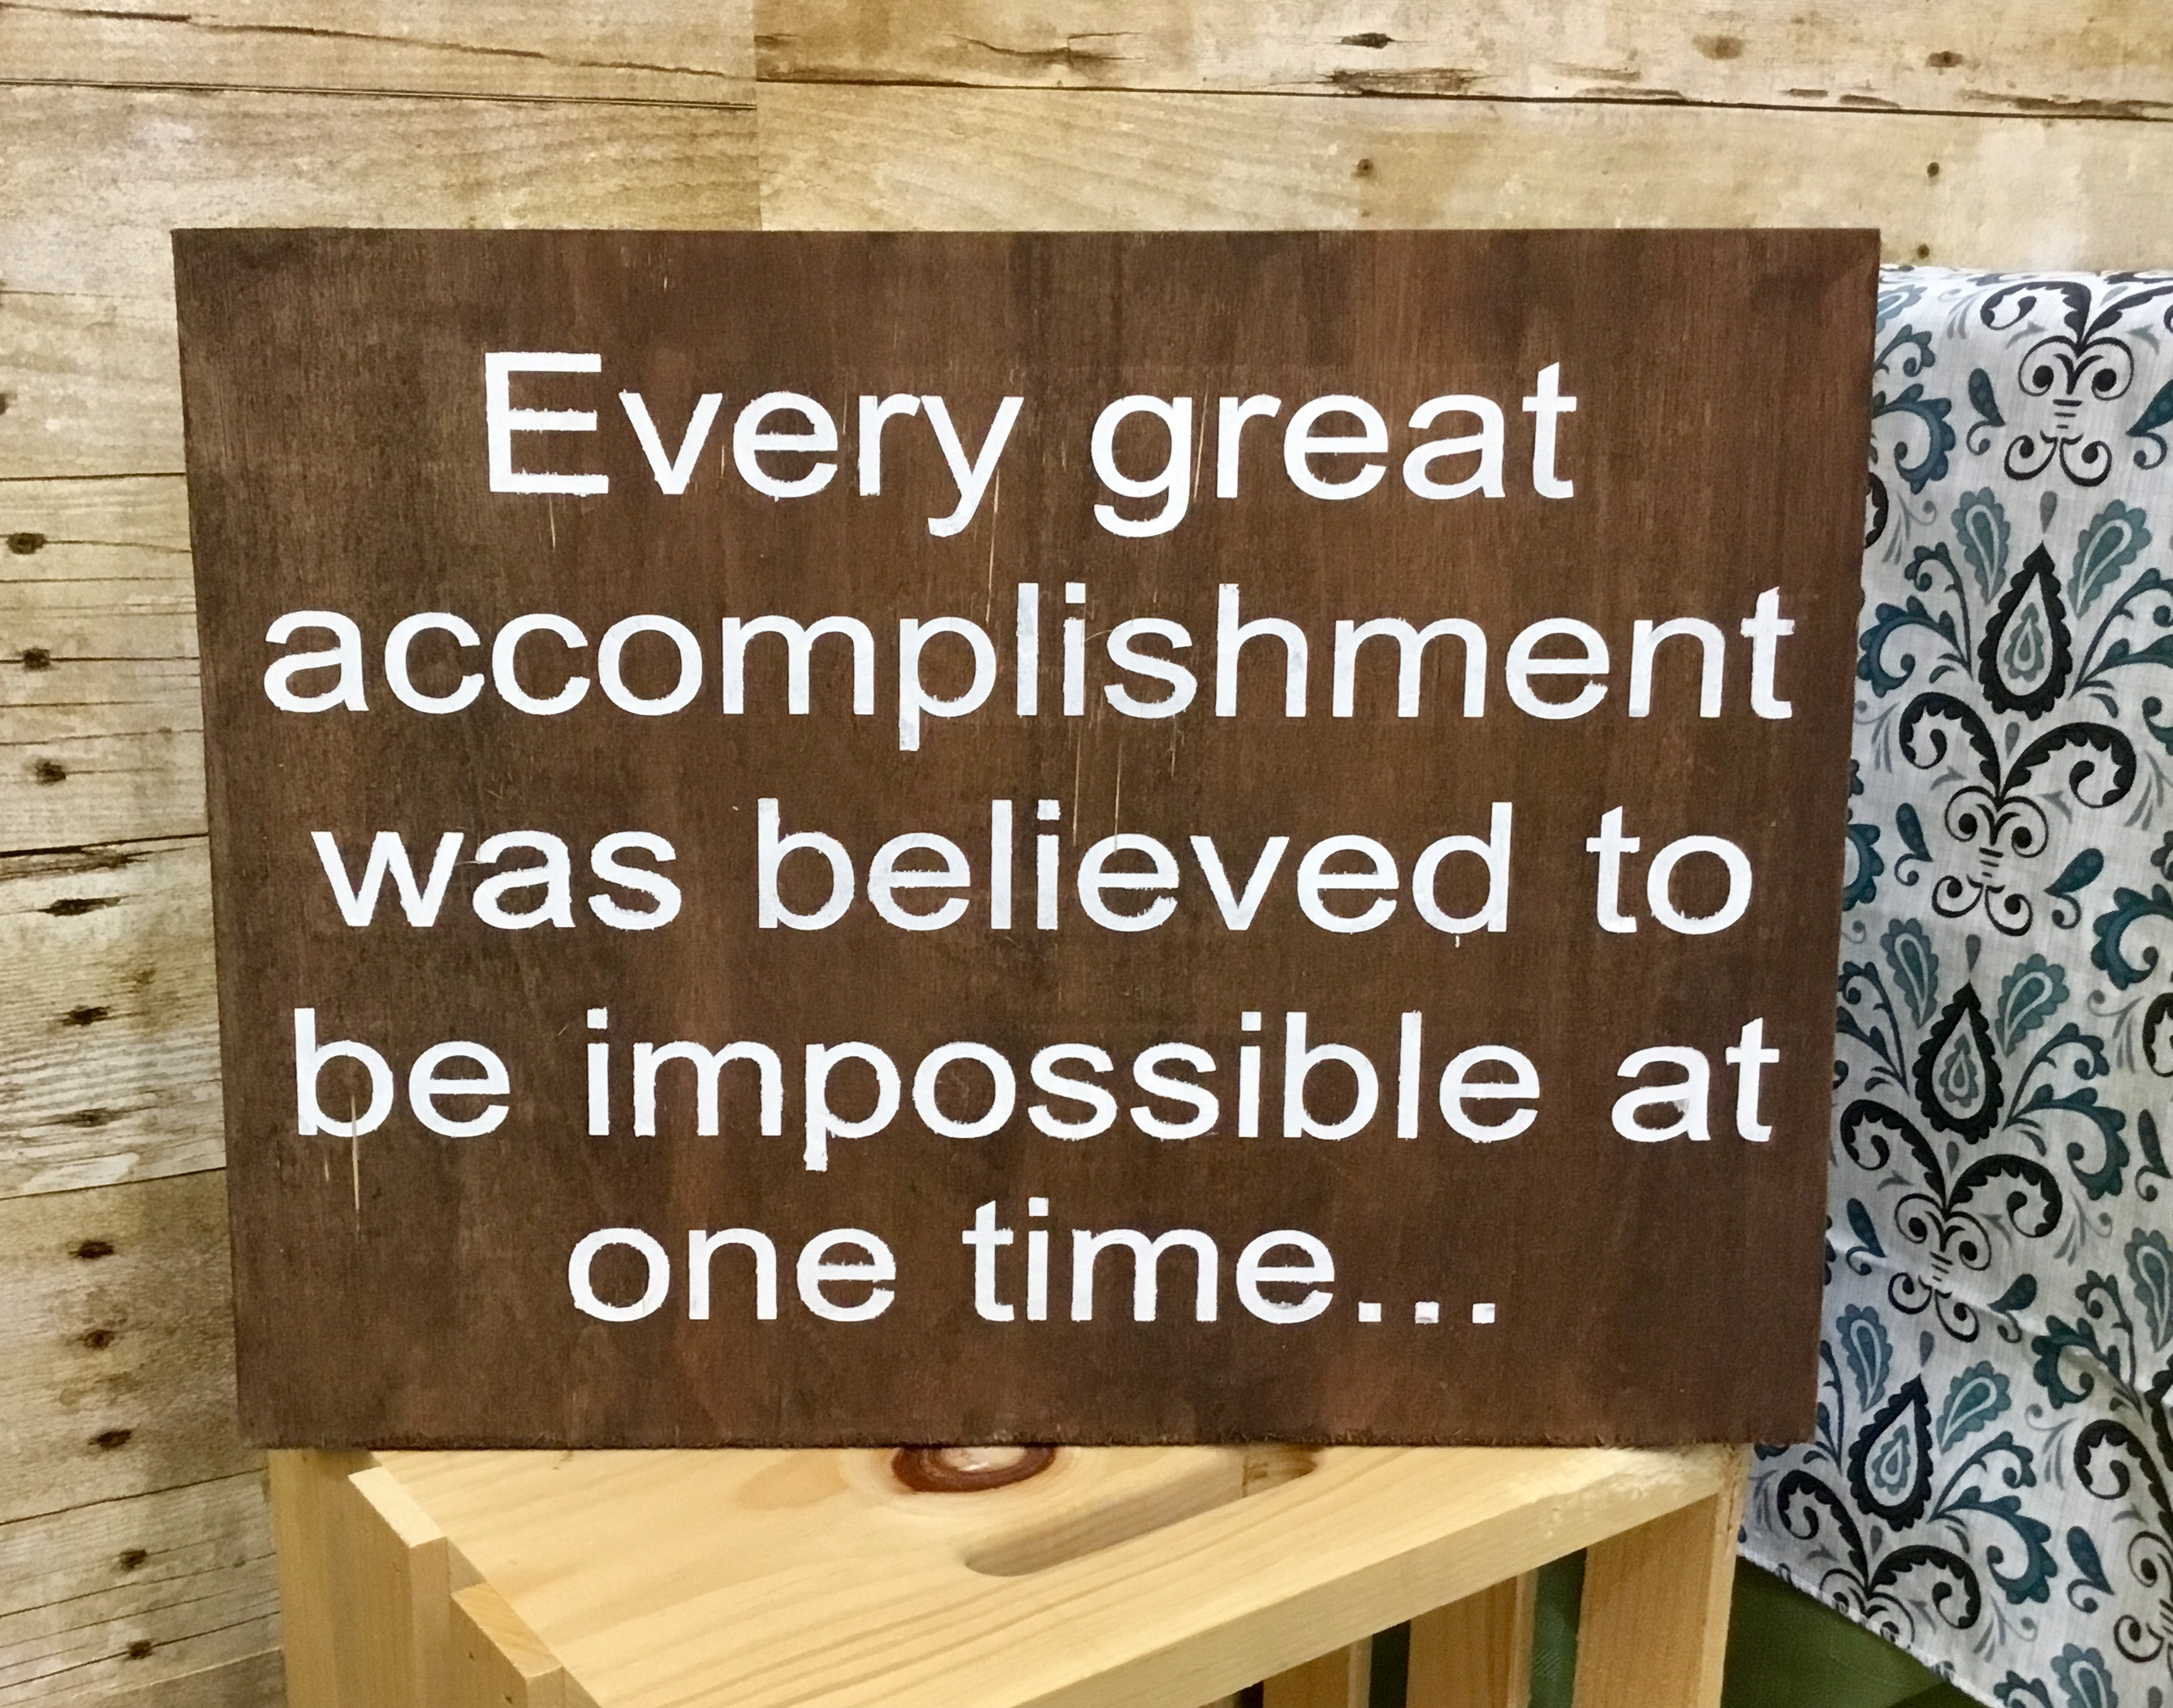 Every great accomplishment..